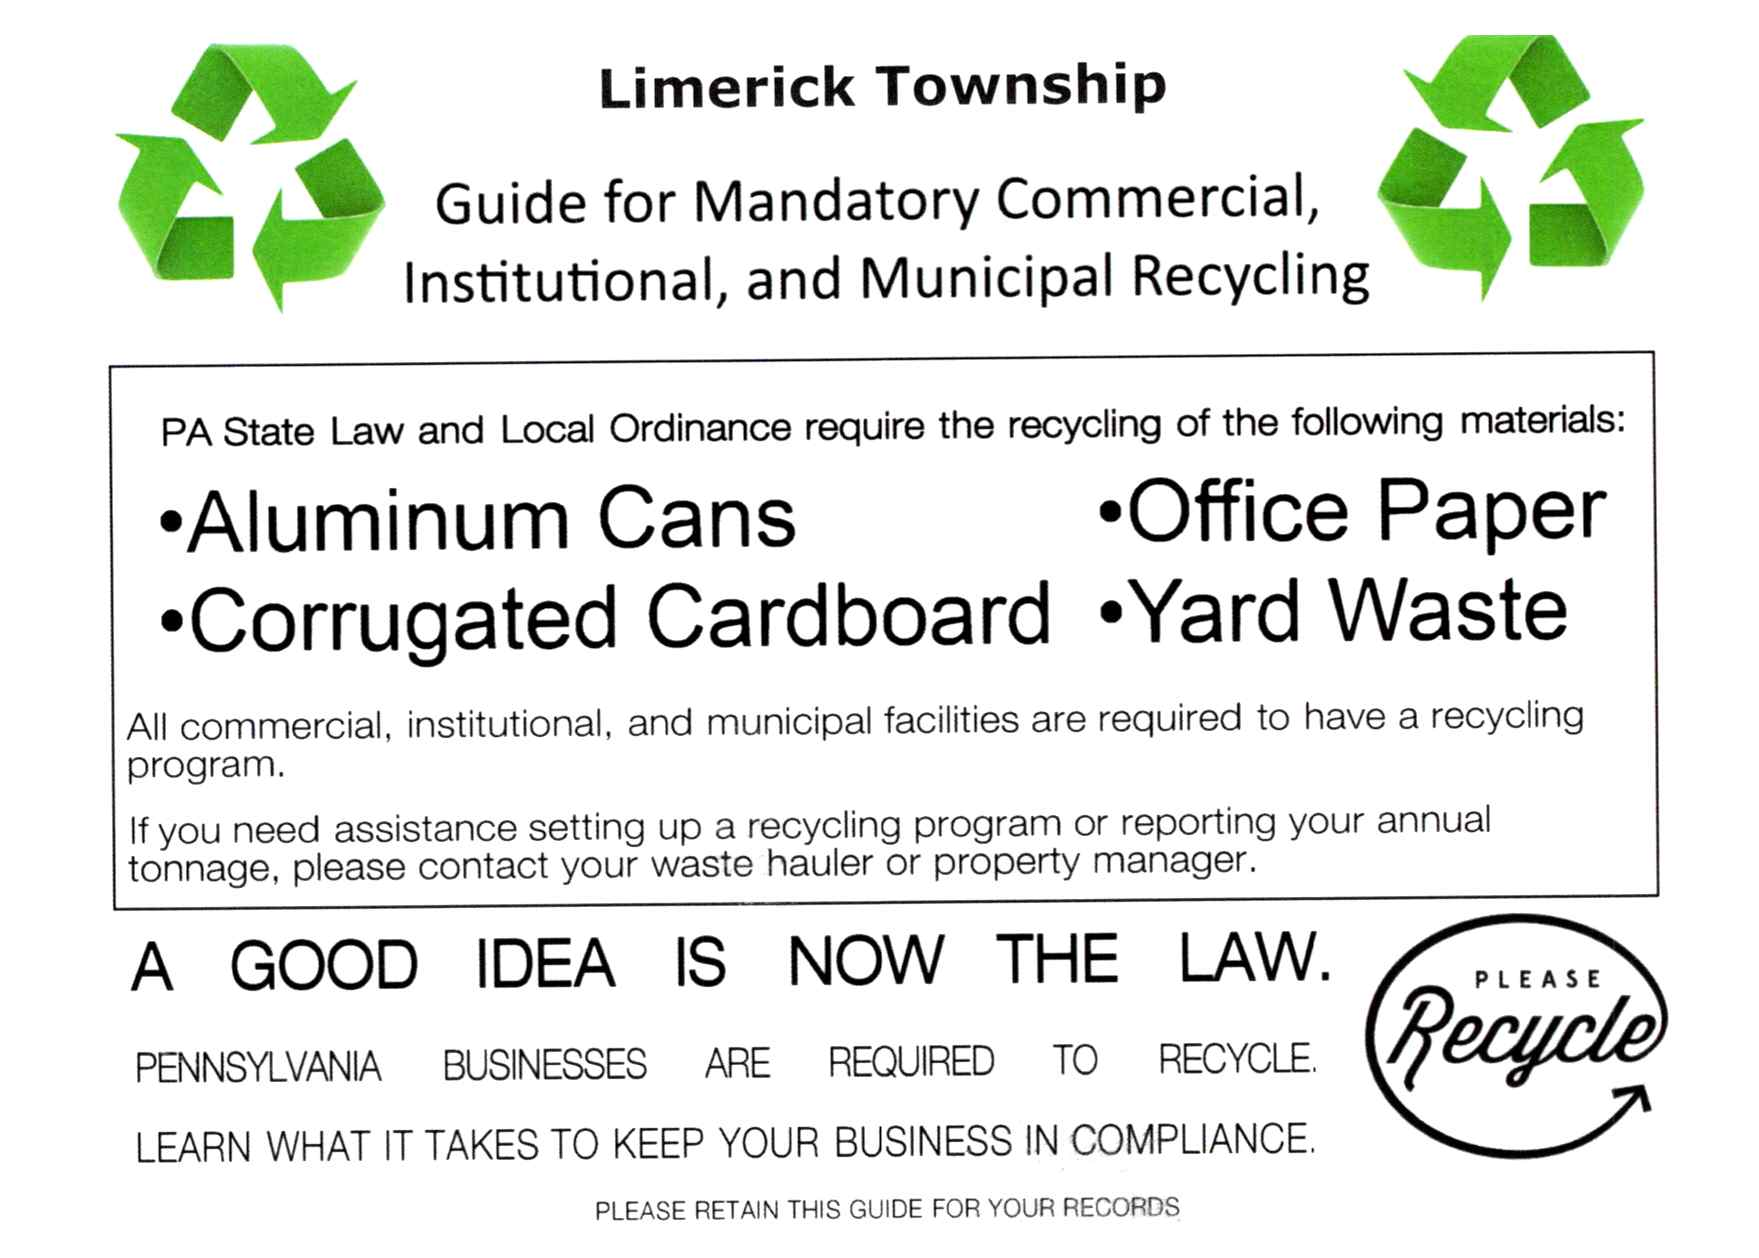 Recycling Postcard - Sent to Commercial Entities in Limerick Twp